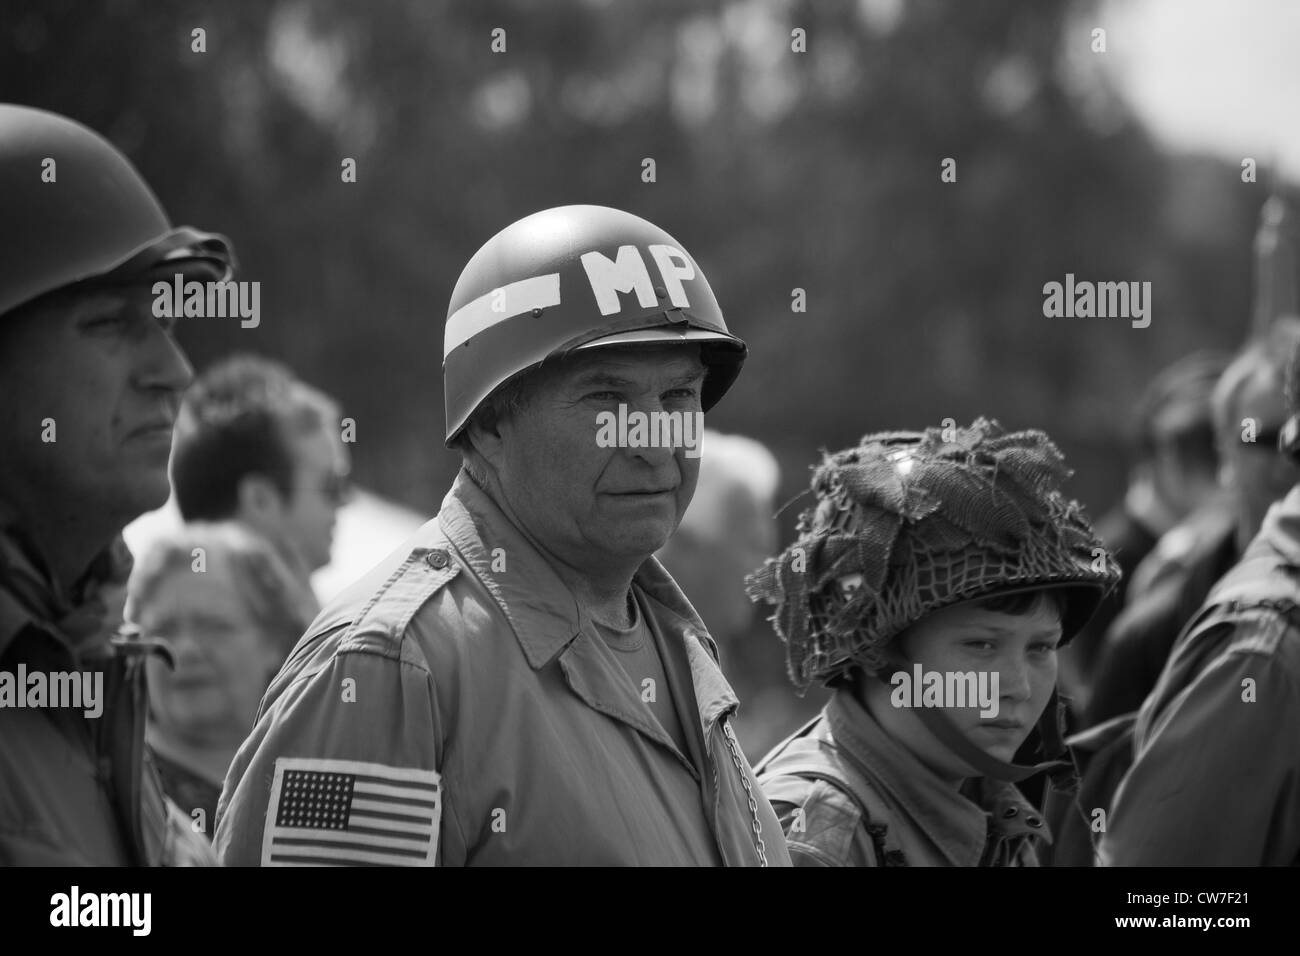 Re-enactor playing 1940's American Soldier with others on parade - Stock Image